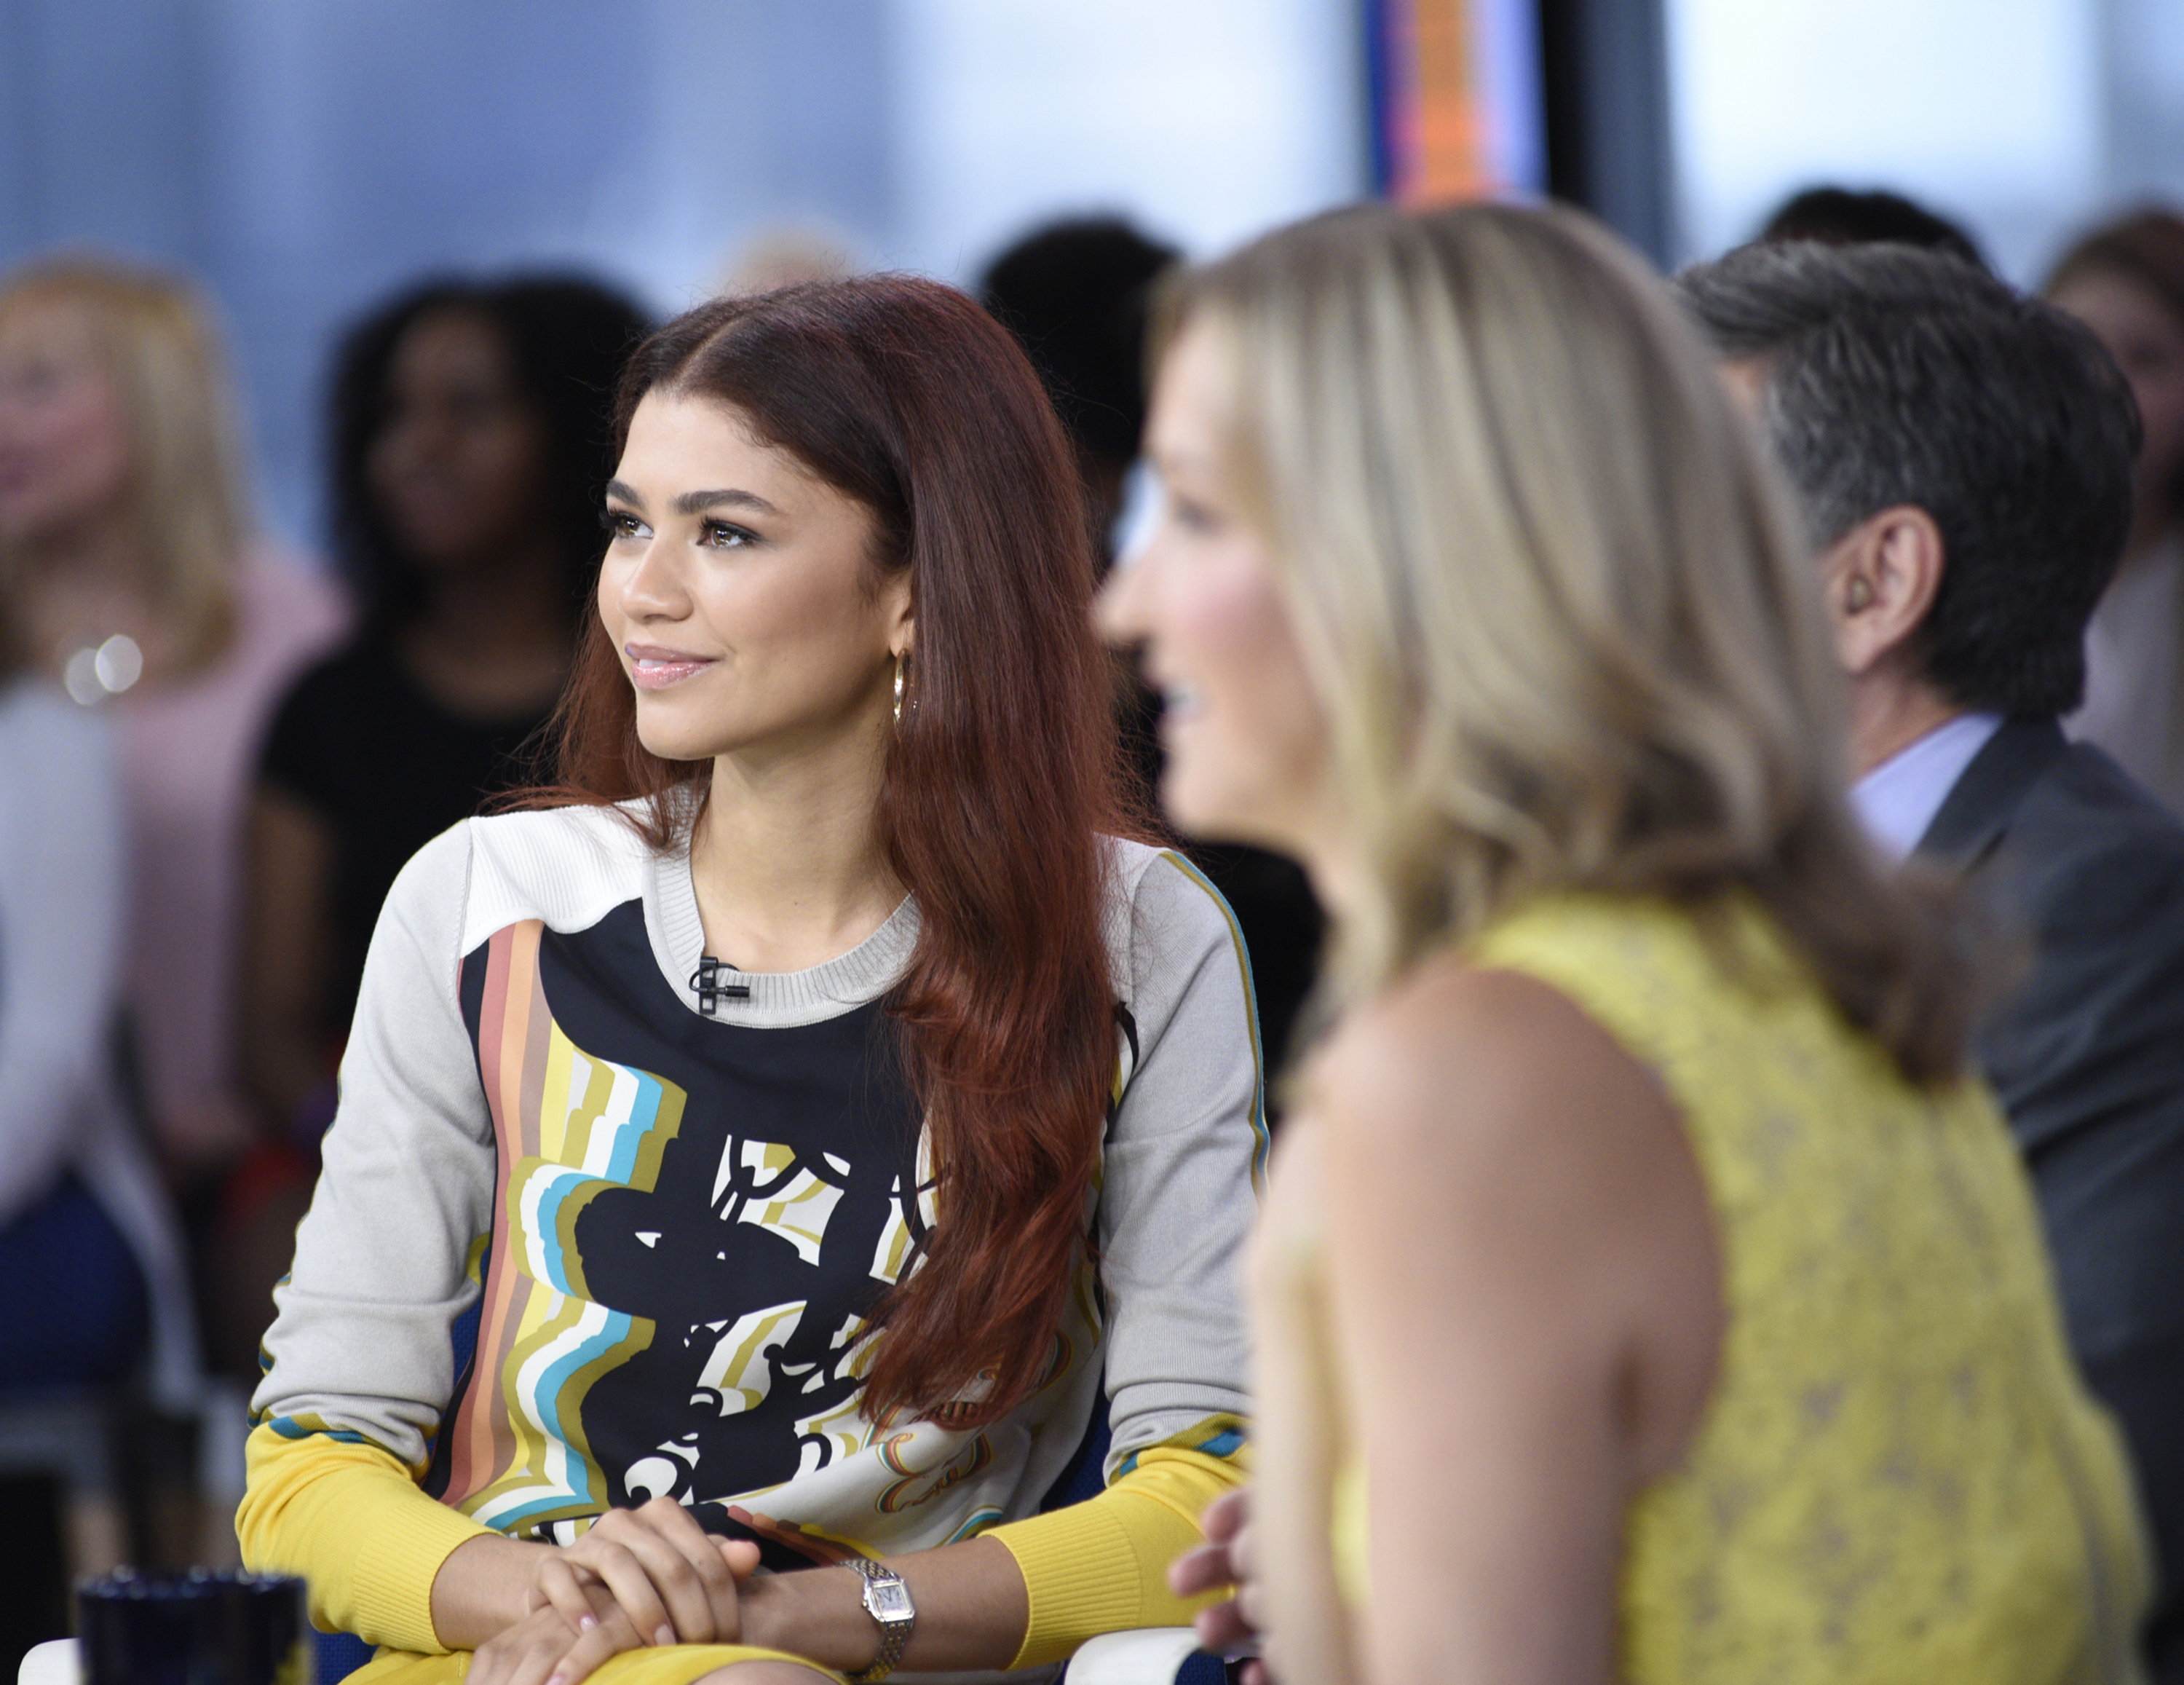 In Case You Missed It: Zendaya Coleman On Good Morning America